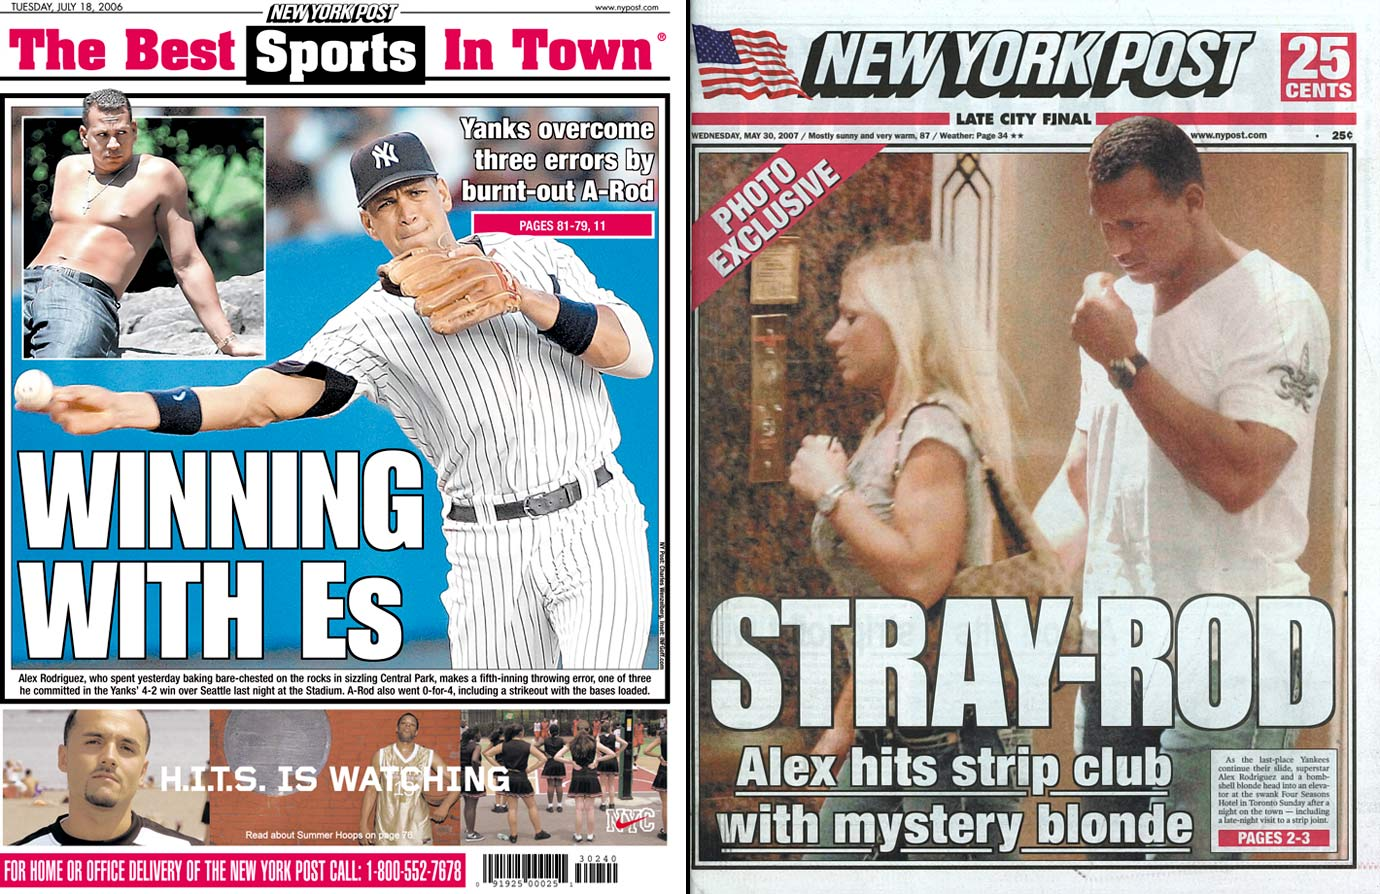 "It's a challenge for any New York athlete to stay out of the press, something A-Rod knows all too well. In 2006, he was photographed sunbathing shirtless in Central Park. A year later, he was spotted leaving a Toronto strip club with a ""mystery blonde."" Days later, an exotic dancer was quoted in the New York Daily News about A-Rod's preference for the ""she-male, muscular type."" A year later, Cynthia Rodriguez filed for divorce, citing ""extra marital affairs and other marital misconduct."""